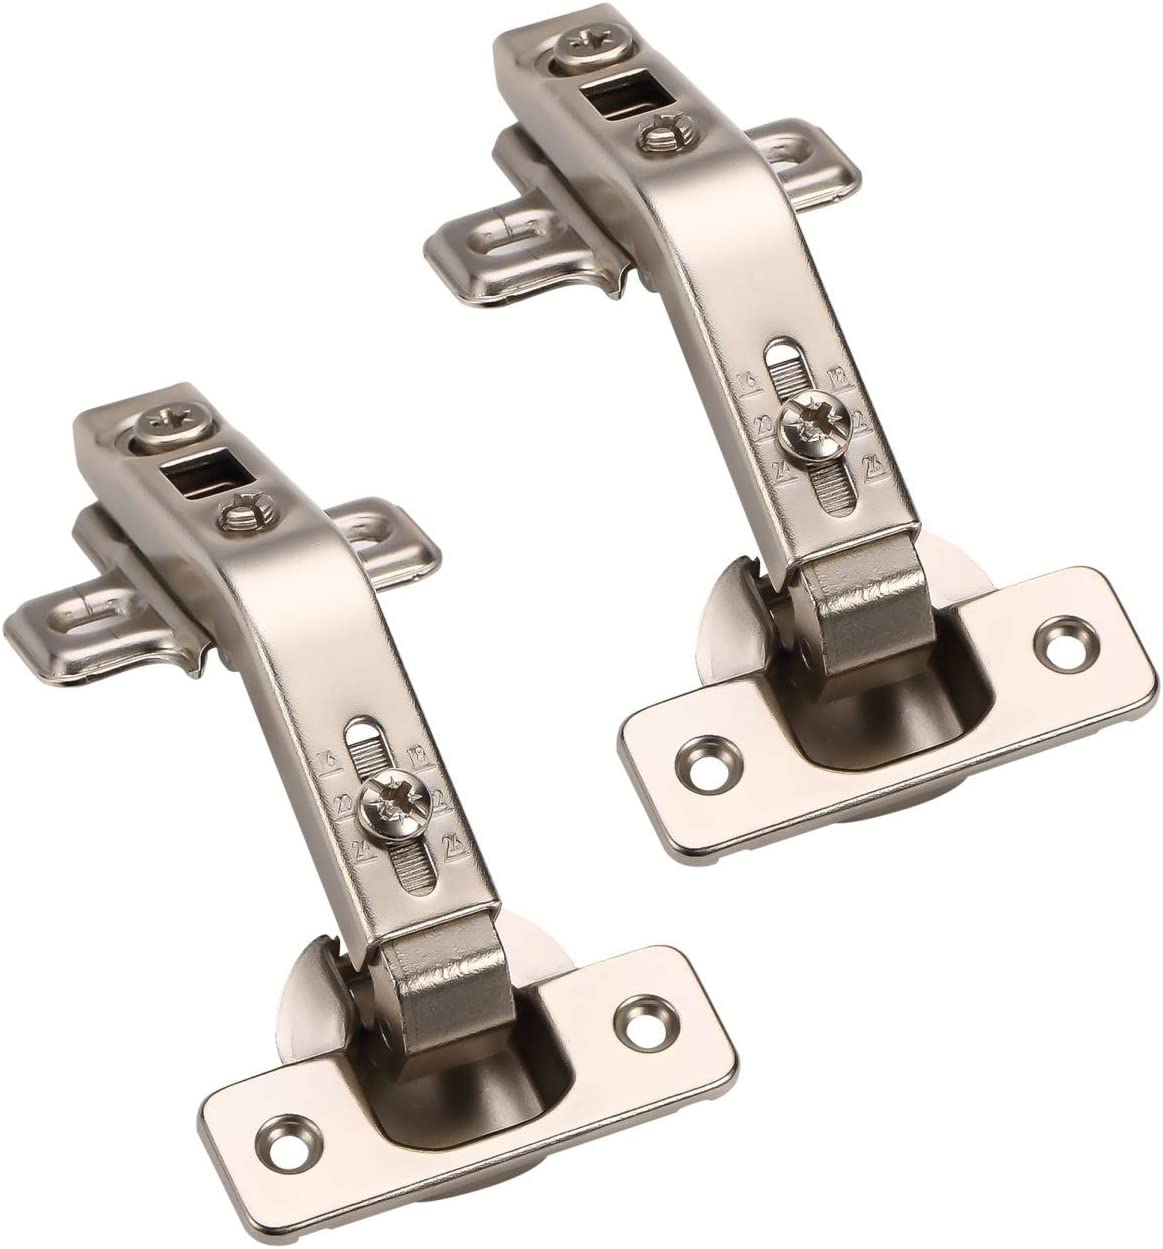 Furniware 1 Pair 135 Degree Lazy Susan Hinges,Full Overlay Concealed for Cabinet,Cupboard,Folded Door,Combination with Screws(Regular)